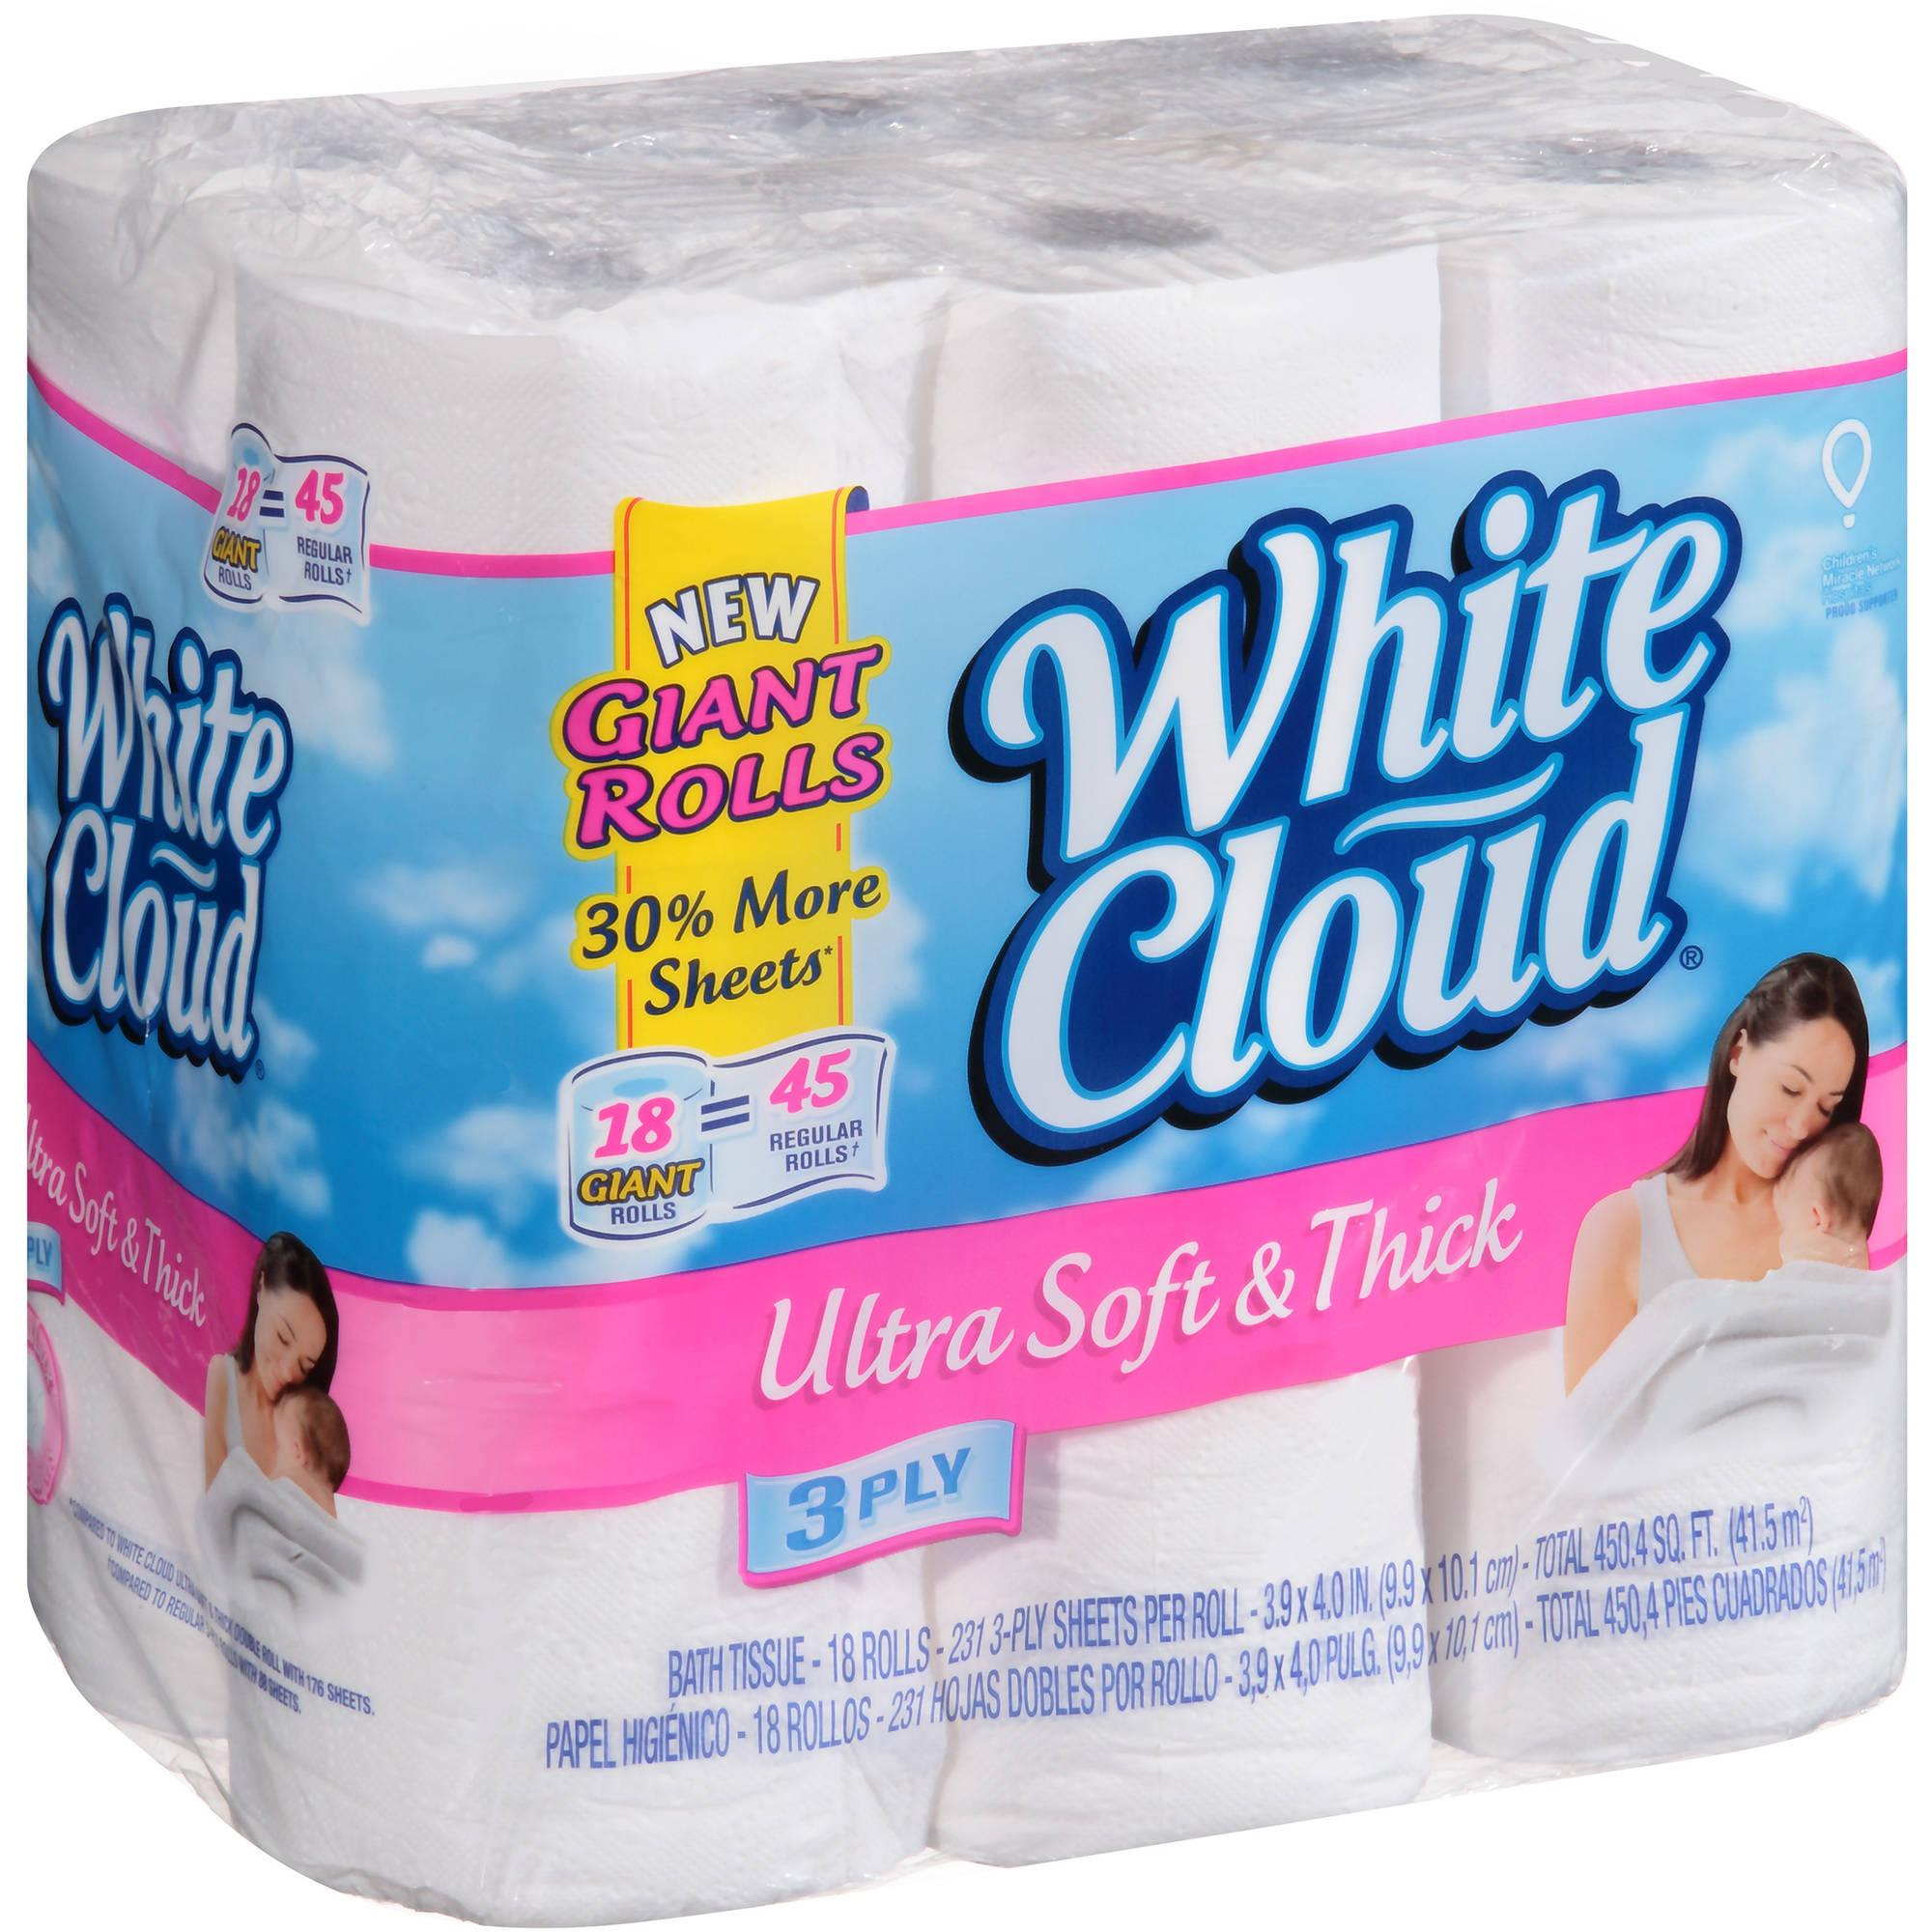 White Cloud Ultra Soft & Thick Bath Tissue Giant Rolls, 3 ply toilet paper, 231 sheets, 18 rolls